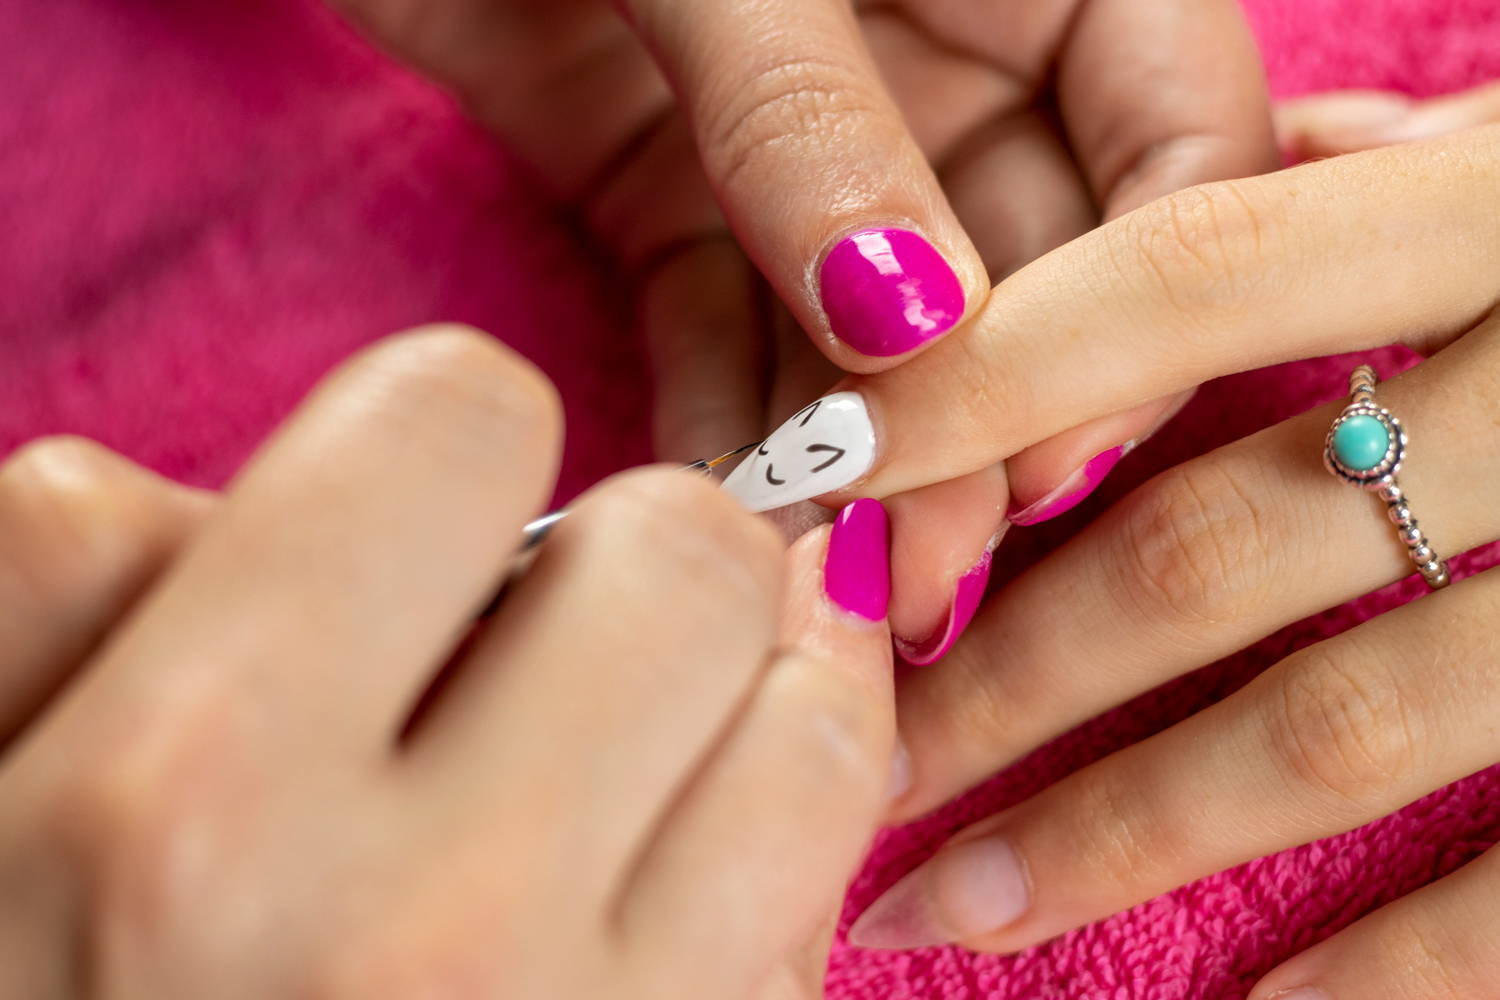 Unicorn nail art detail being painted onto a nail using ORLY GelFX Liquid Vinyl